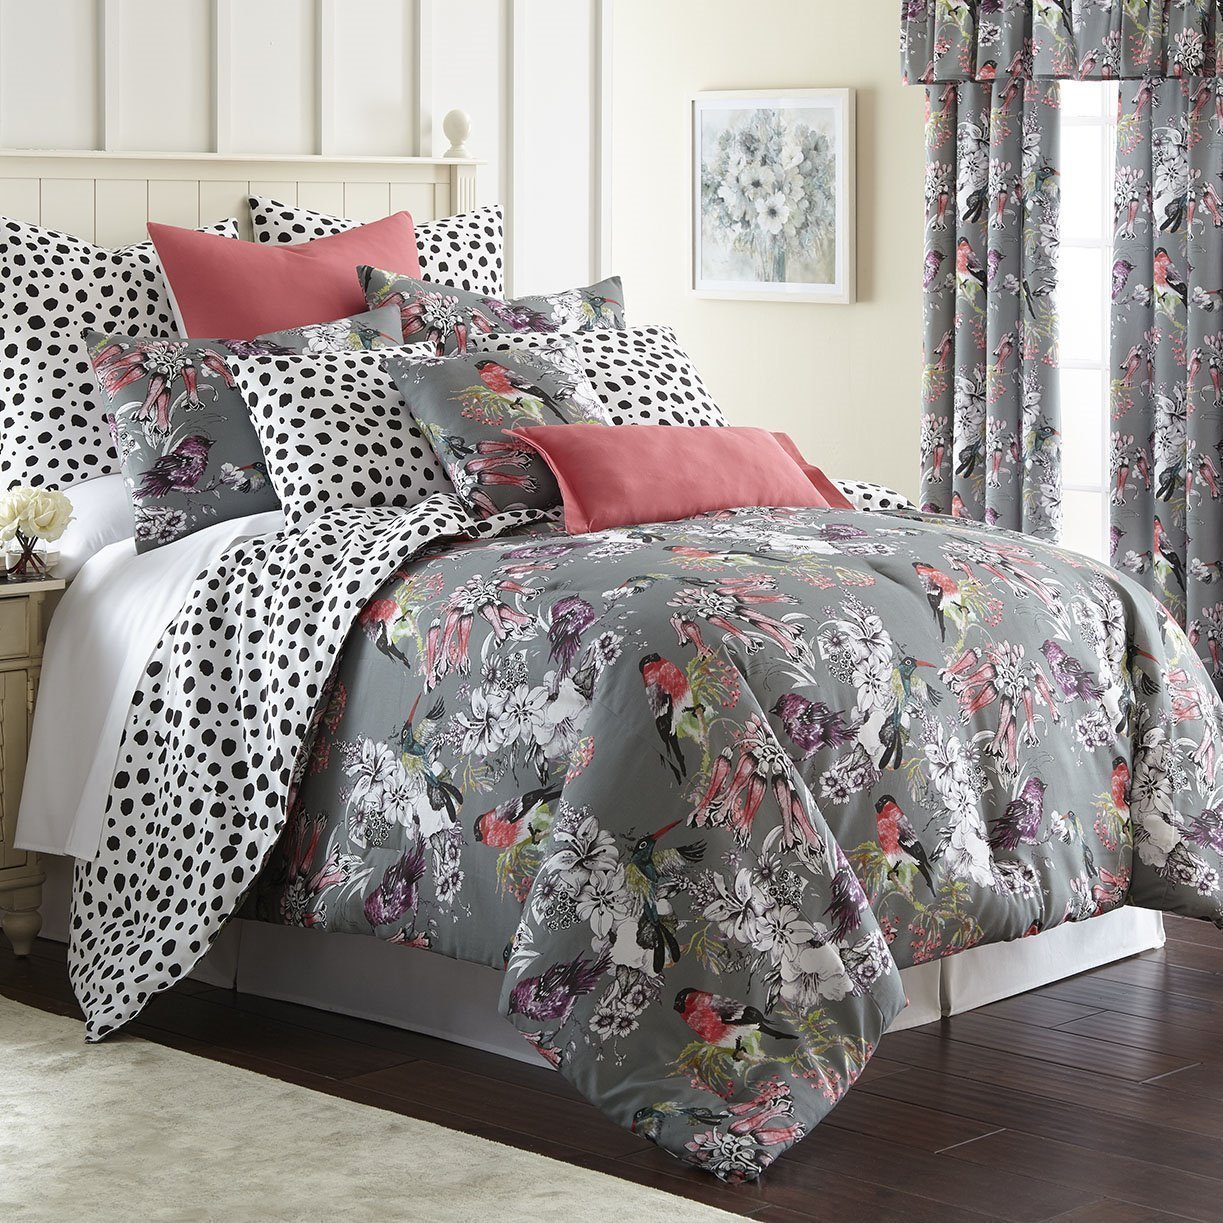 Birds In Bliss Comforter Set Reversible Super Queen